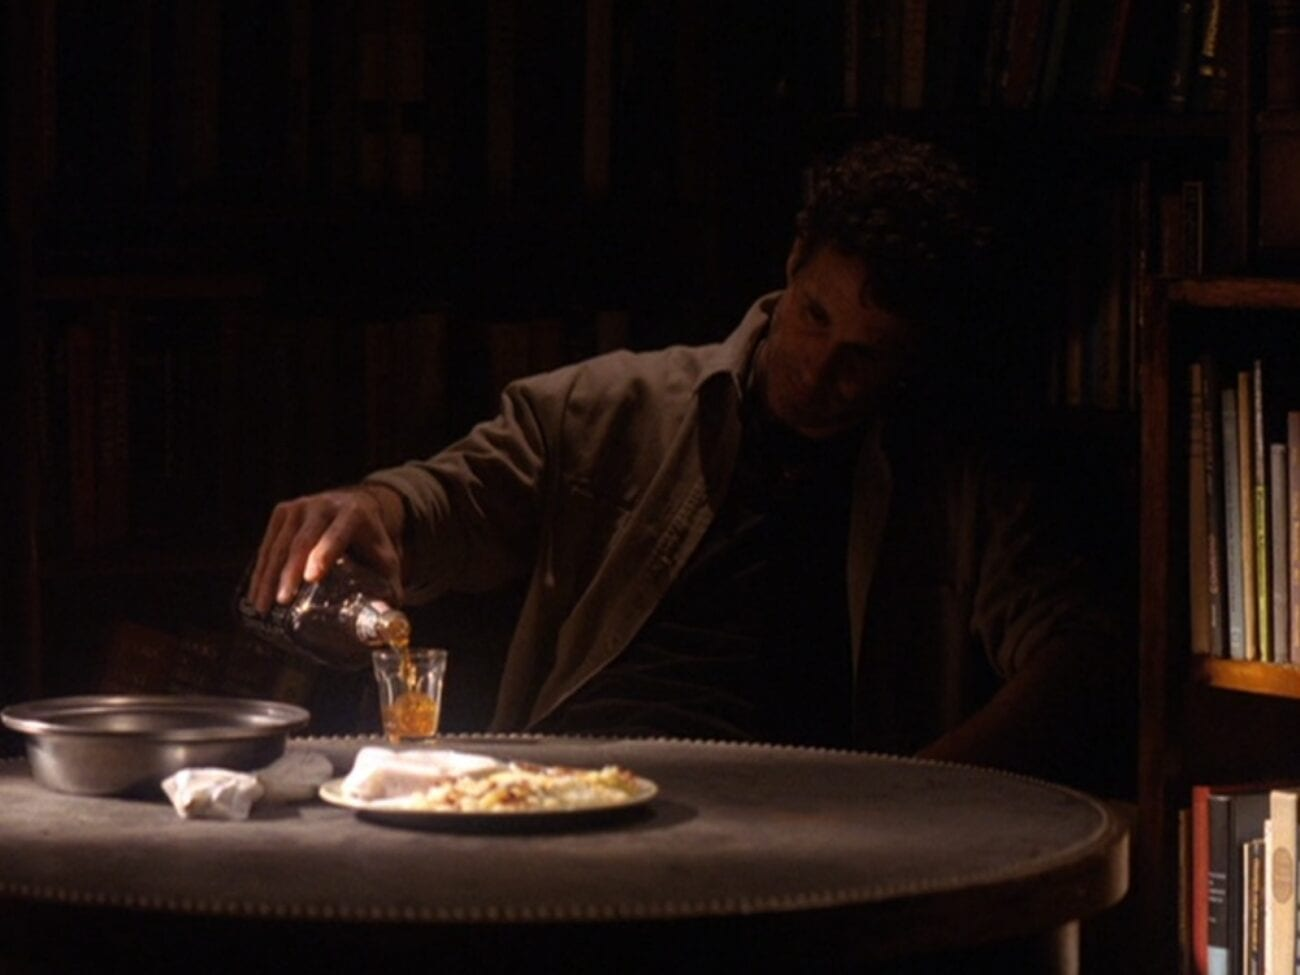 Harry sits in dim light at a bare table with a plate of breakfast untouched, pouring himself a drink